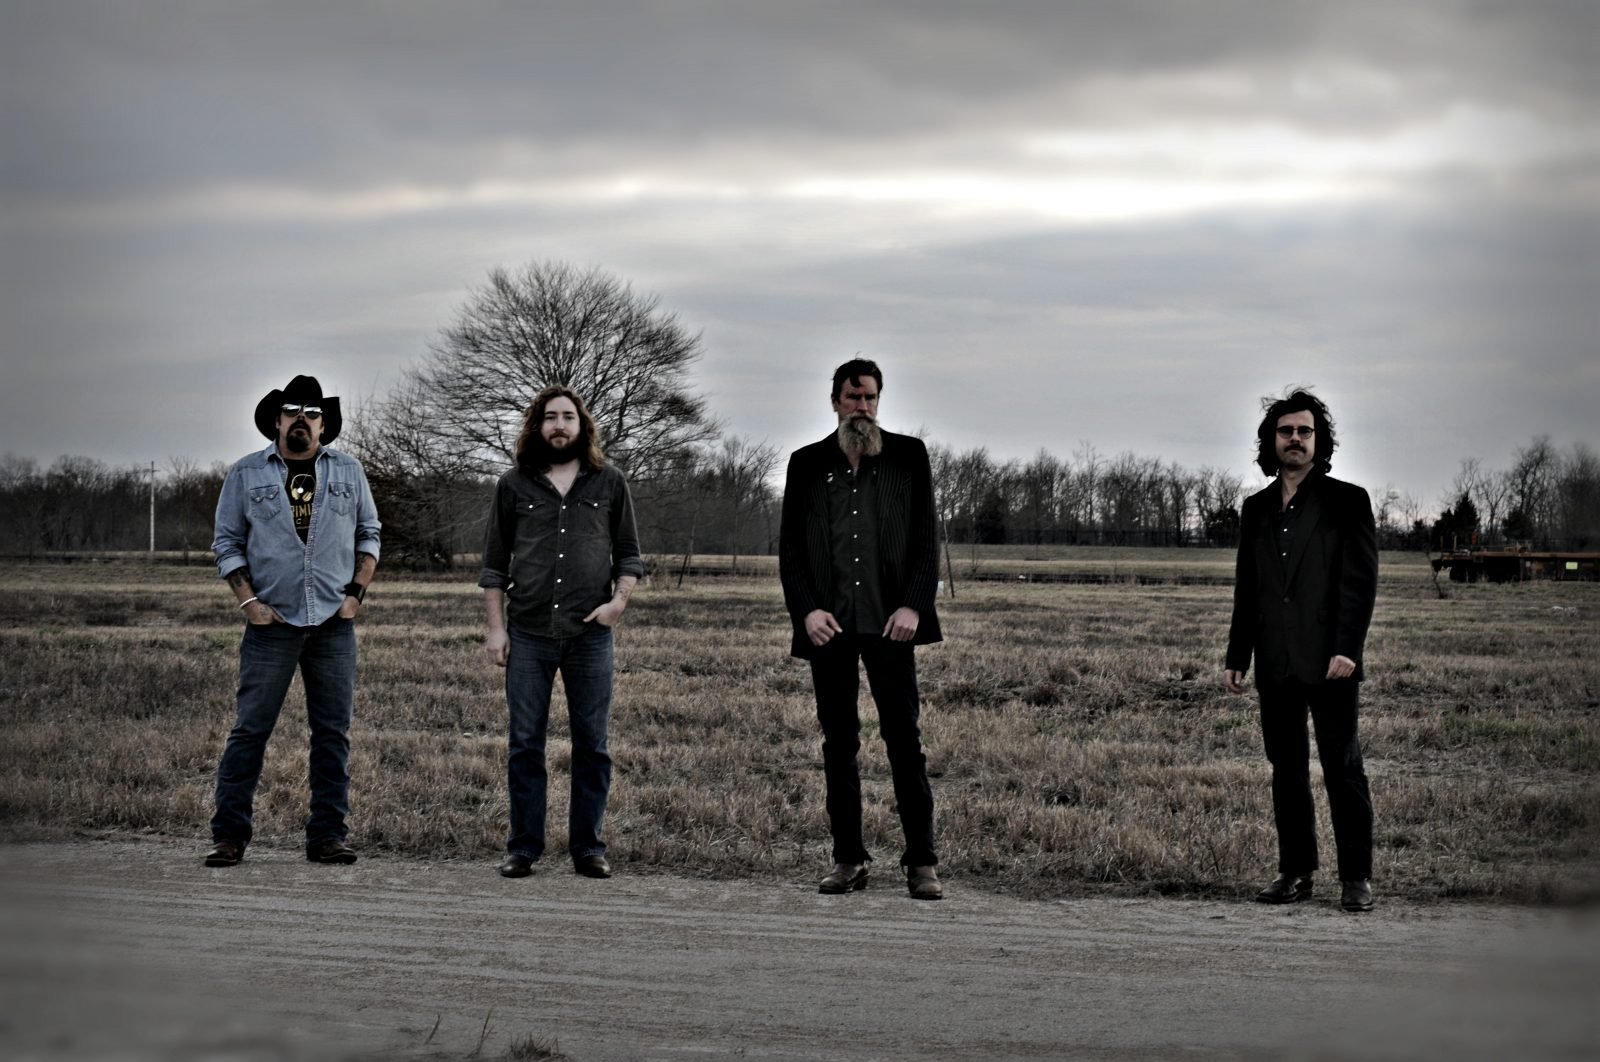 Nick Dittmeier & the Sawdusters will play the Sportsmen's Tavern on March 24.